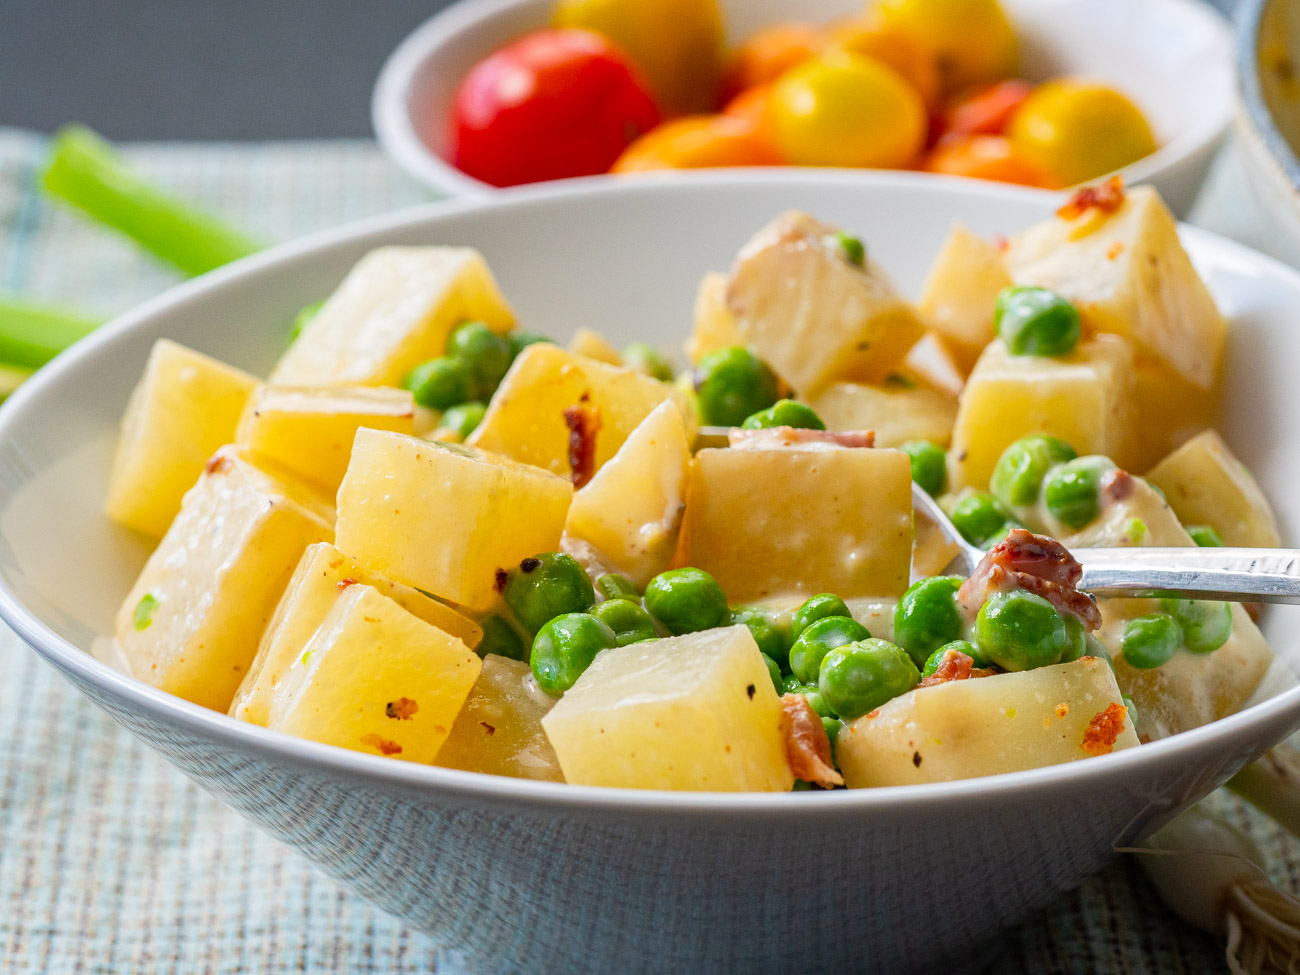 Bowl of creamed peas and potatoes